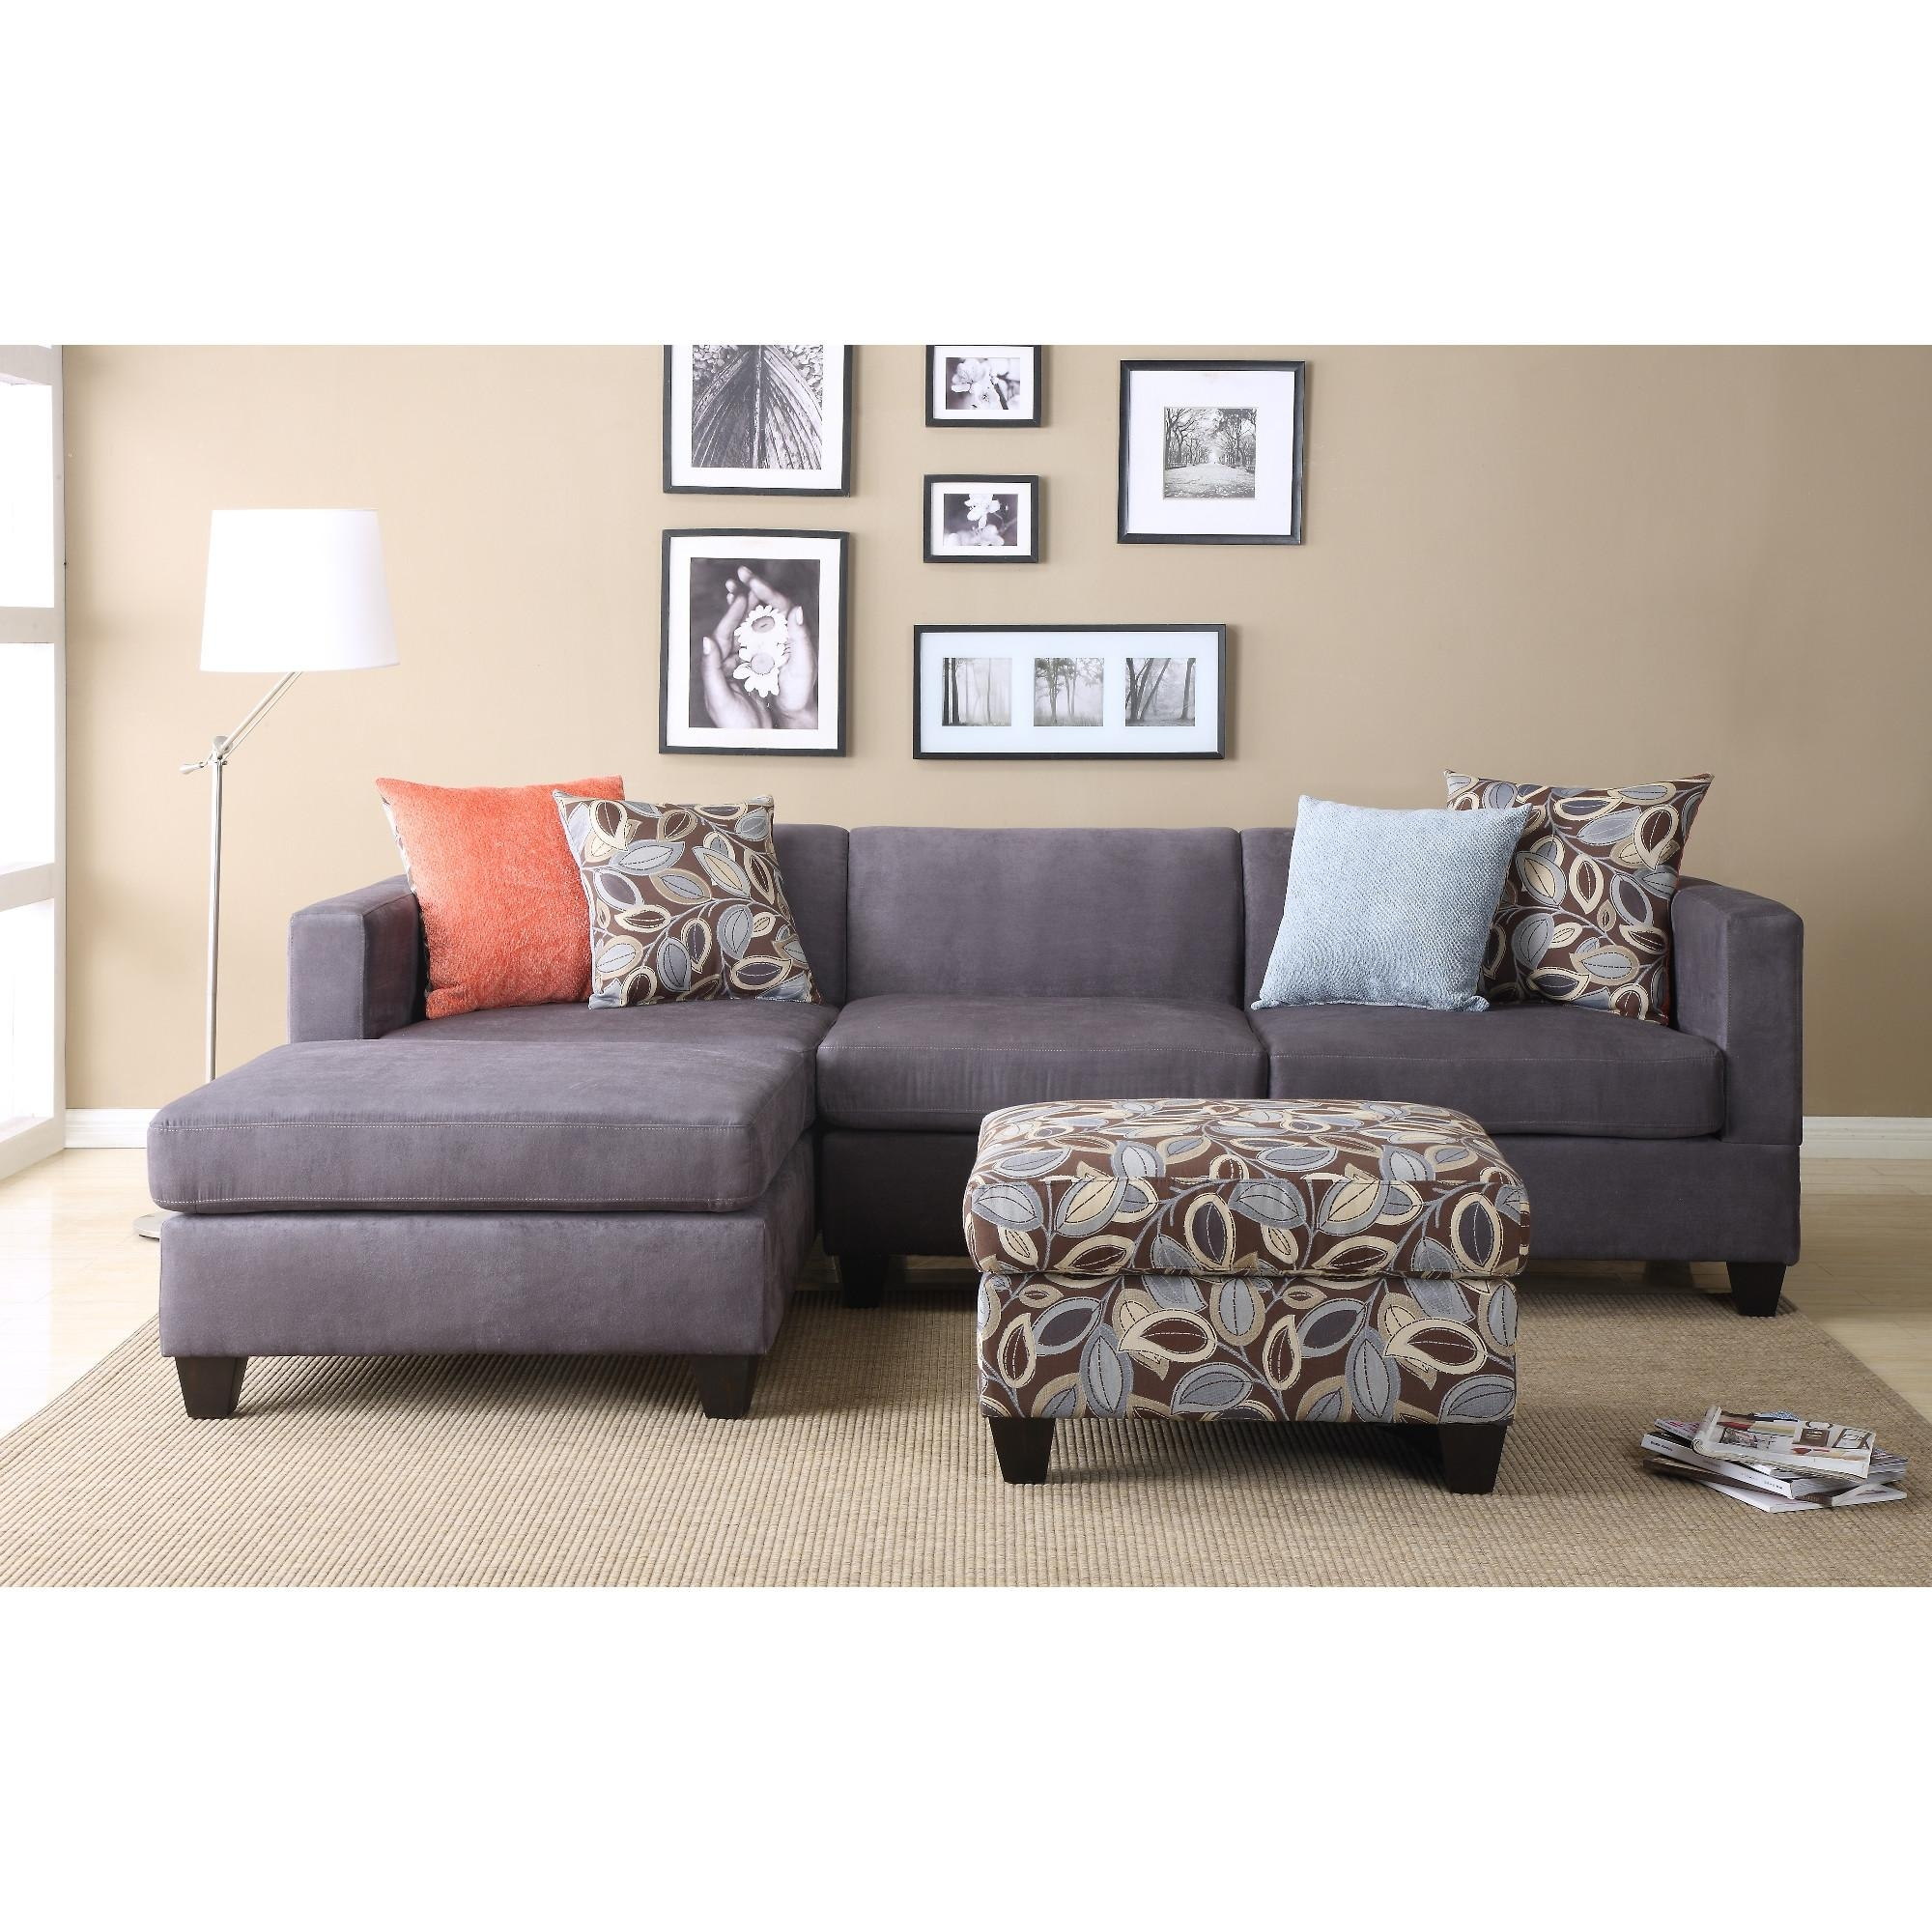 Furniture & Sofa: Best Sectional For Small Spaces | Small Space Throughout Mini Sectional Sofas (View 20 of 20)